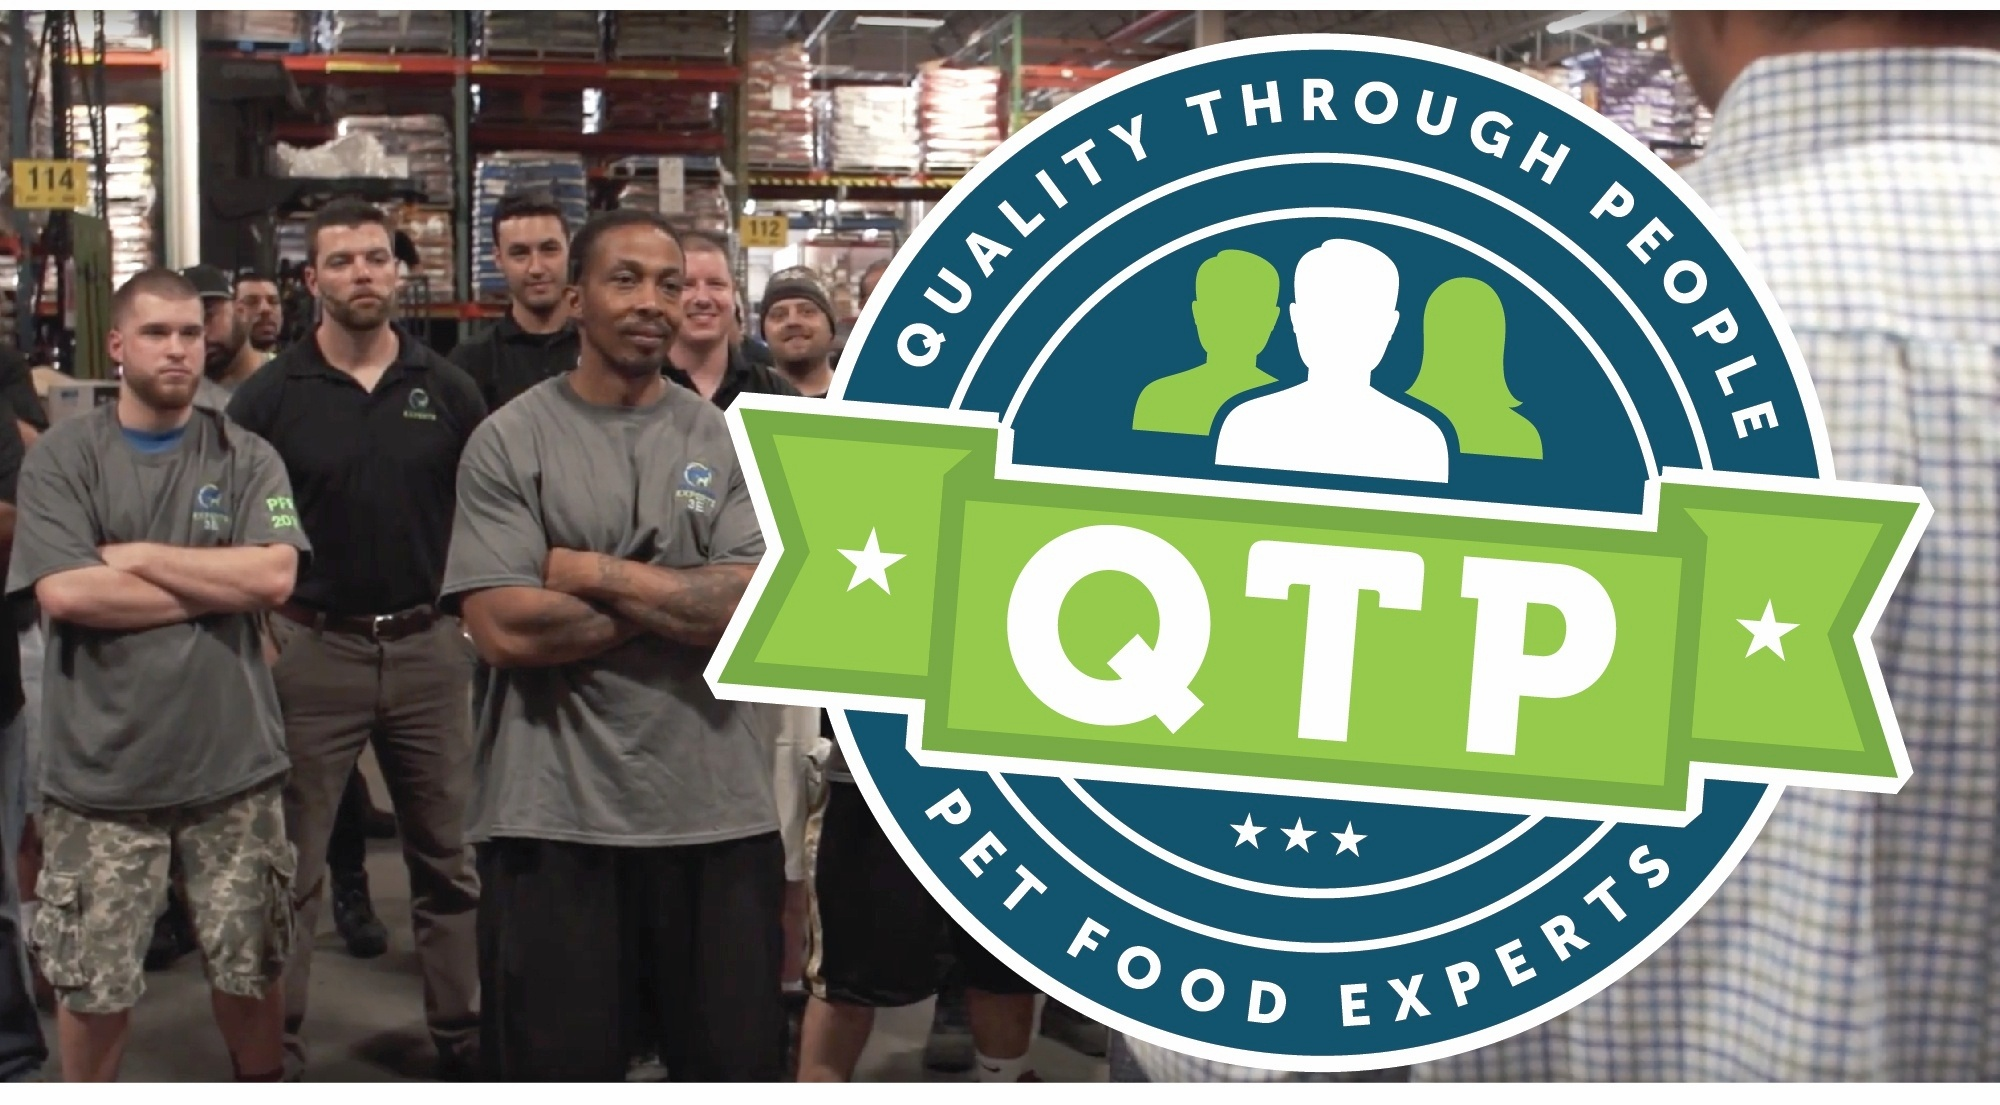 New Program: Quality Through People